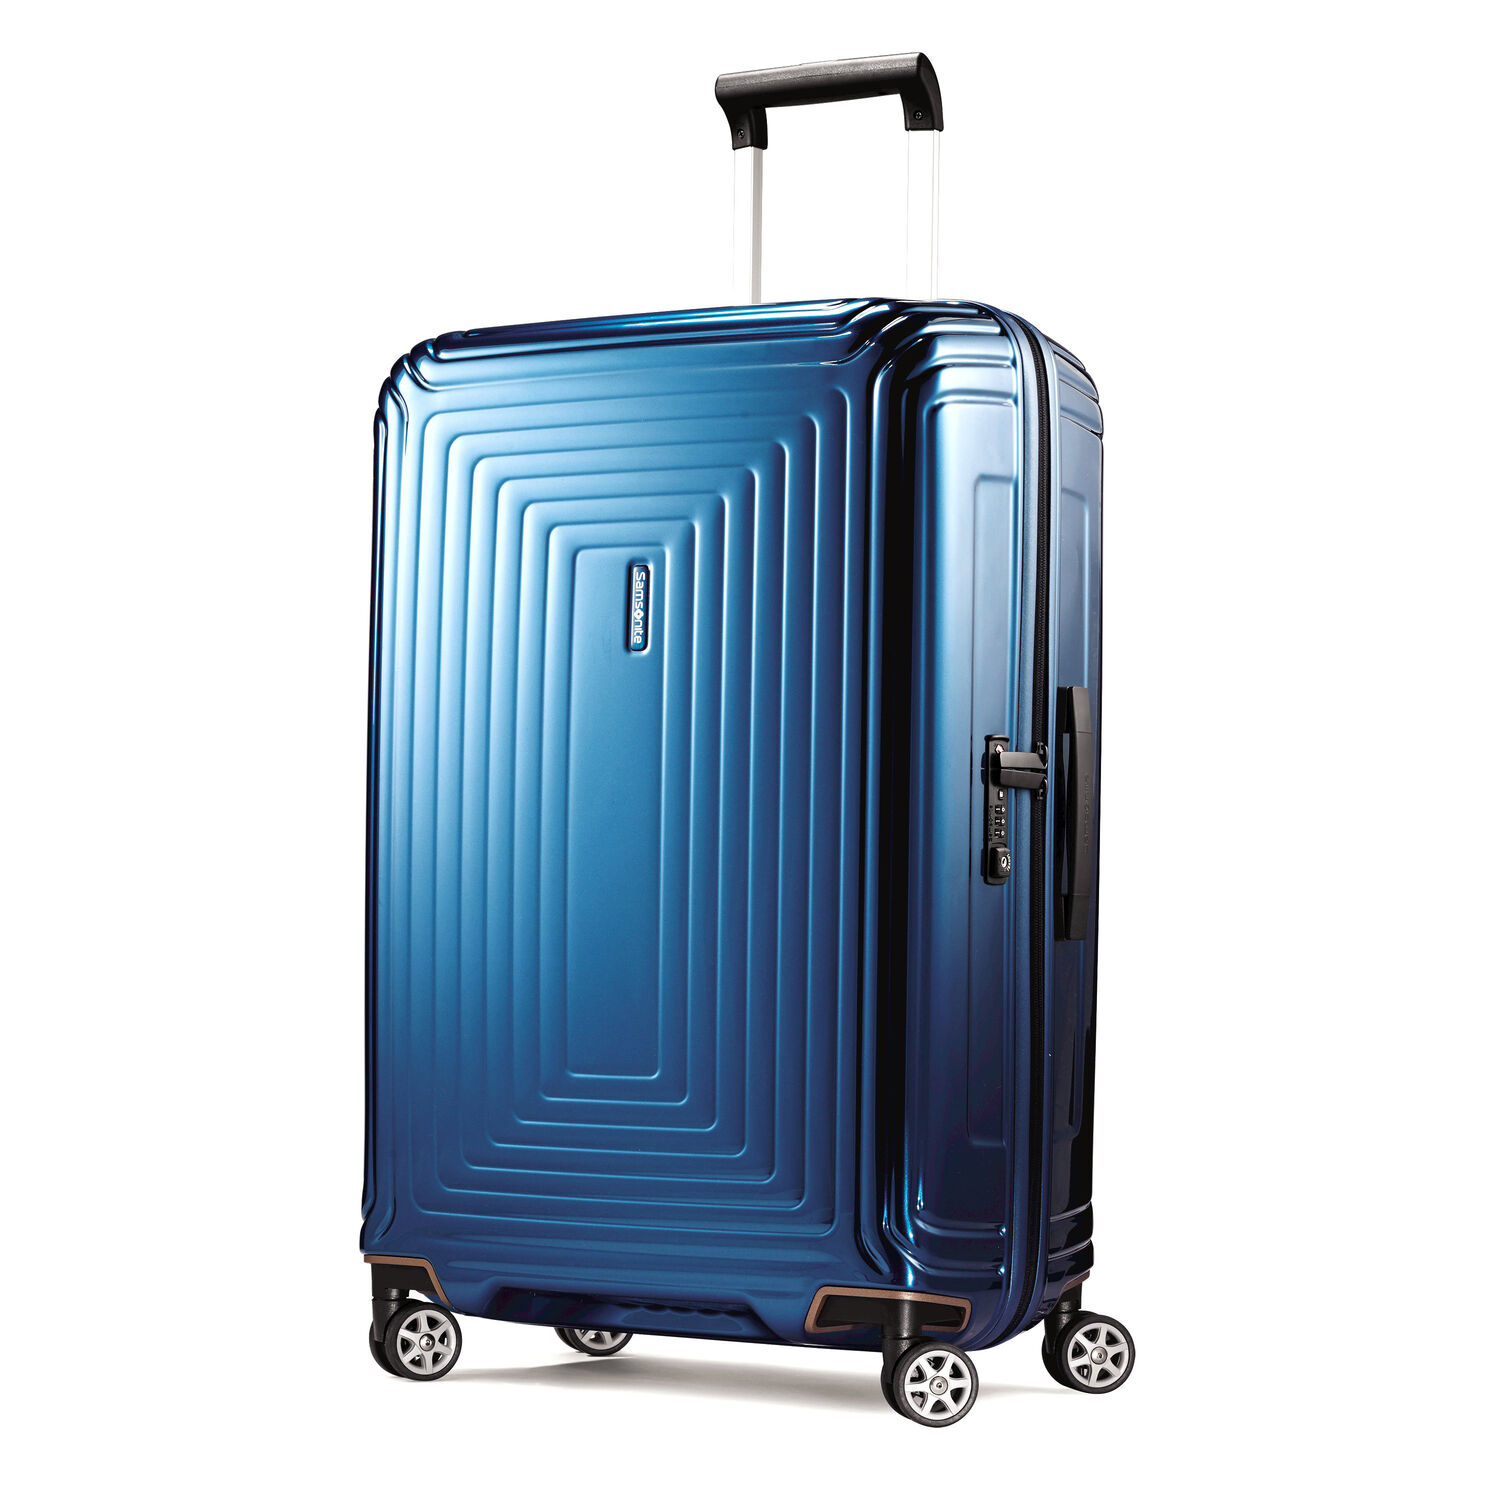 Samsonite Neopulse 28 Quot Spinner